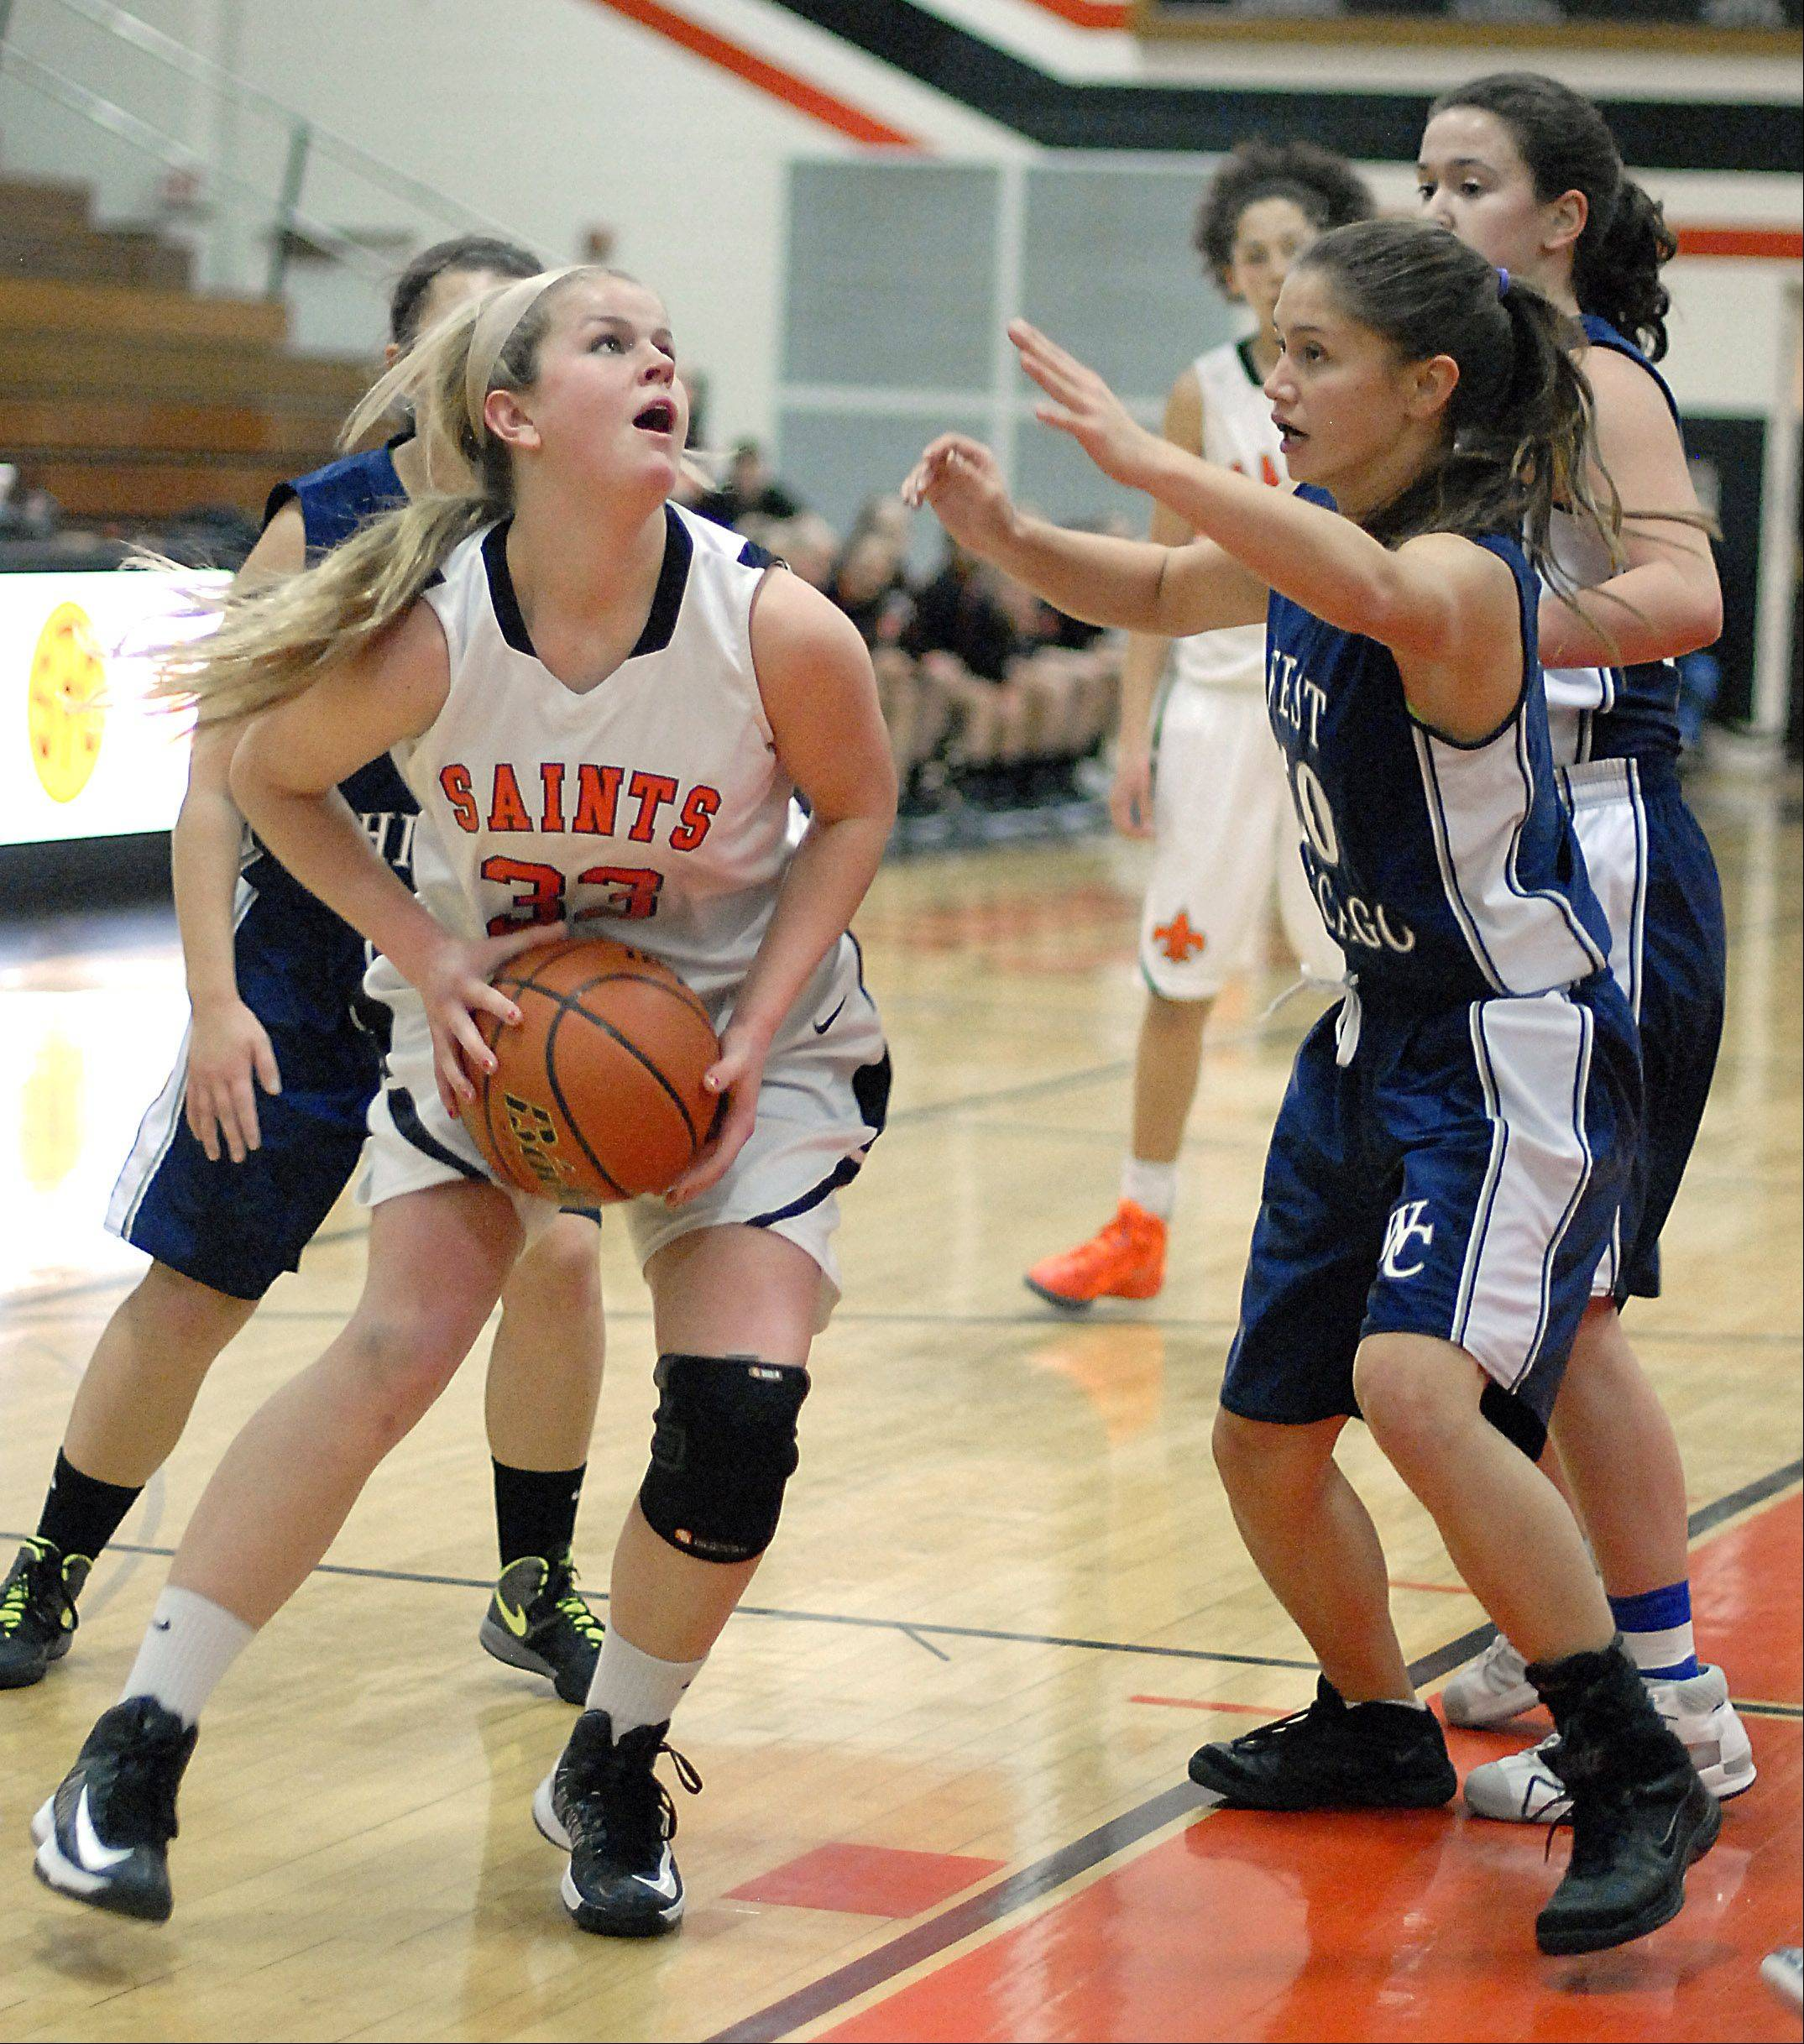 St. Charles East's Hannah Nowling looks to shoot over a block by West Chicago's Amanda Gosbeth in the second quarter on Tuesday, December 4.